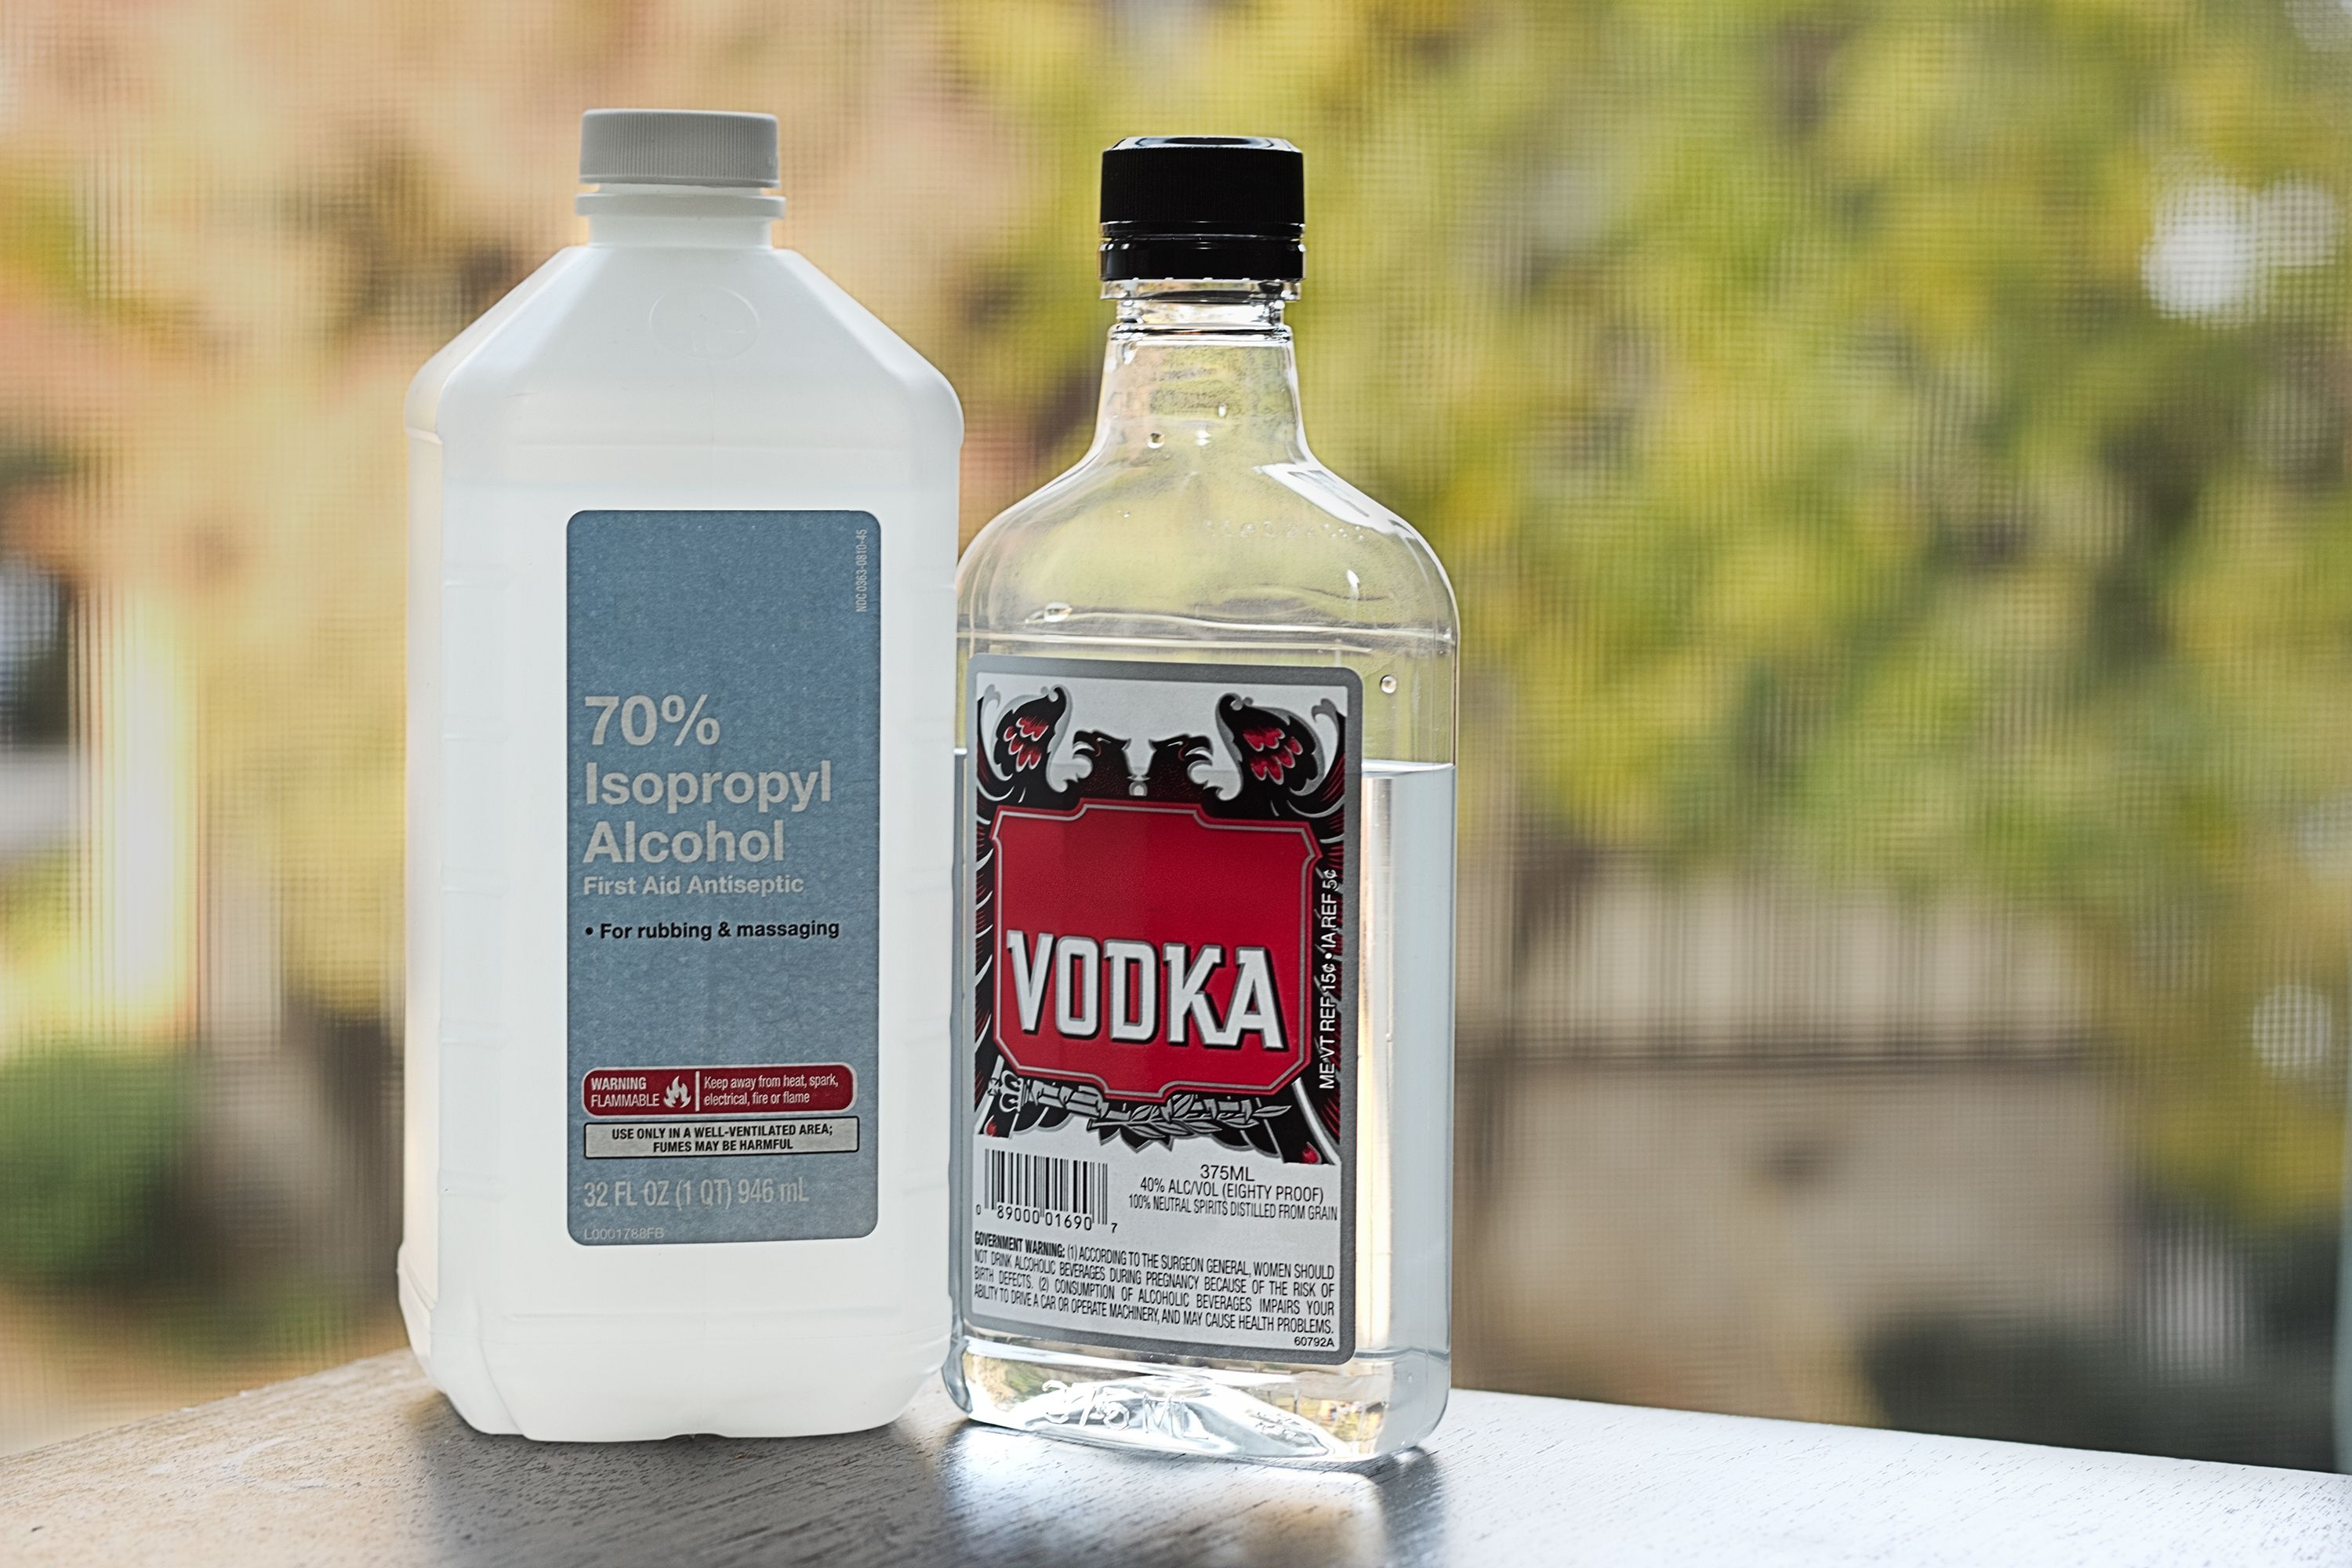 Ethanol Vs Isopropyl Alcohol To Disinfect Alcohol Alcoholic